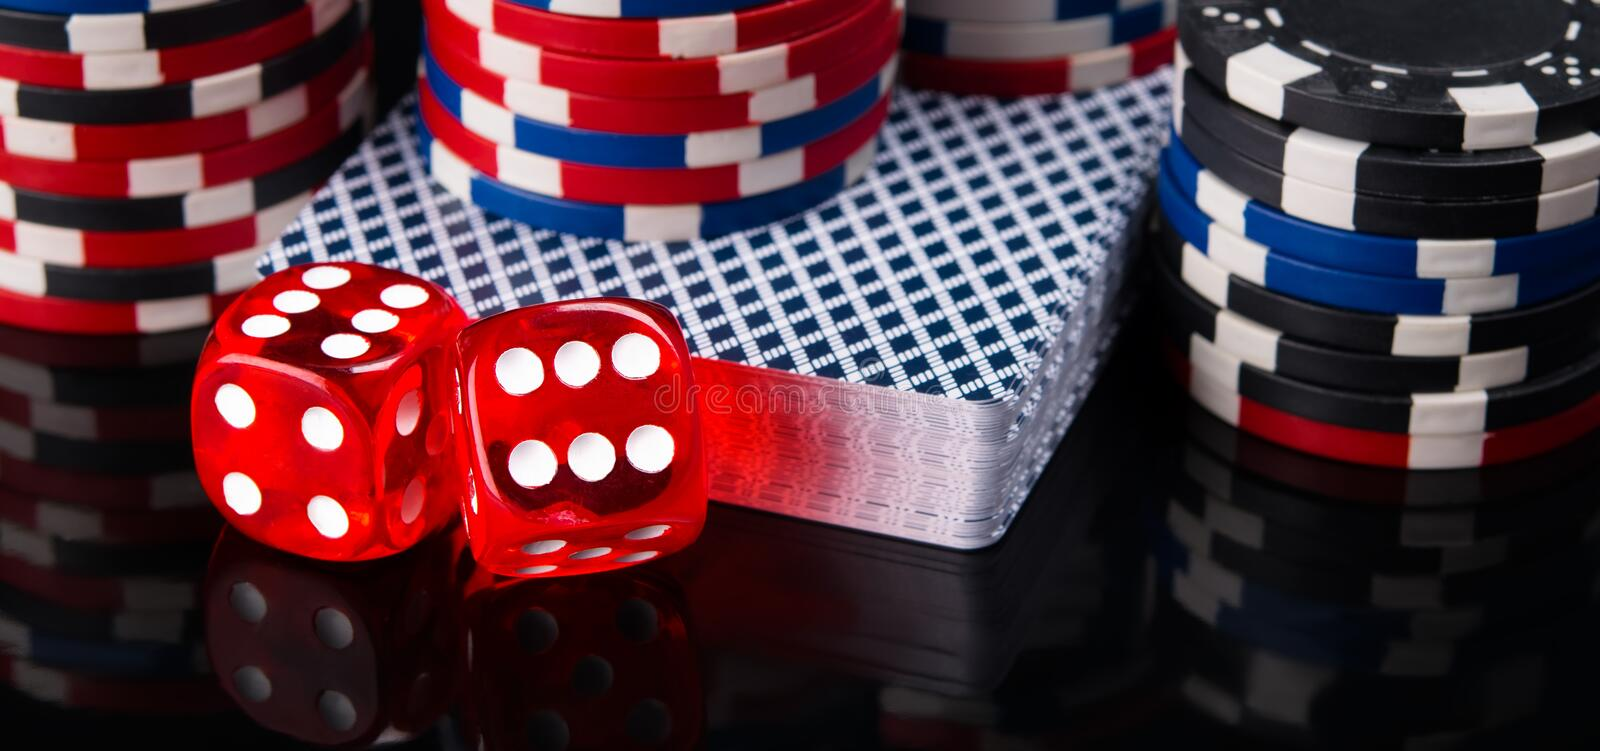 Two red dice, a deck of cards and poker chips, on a black background royalty free stock photo